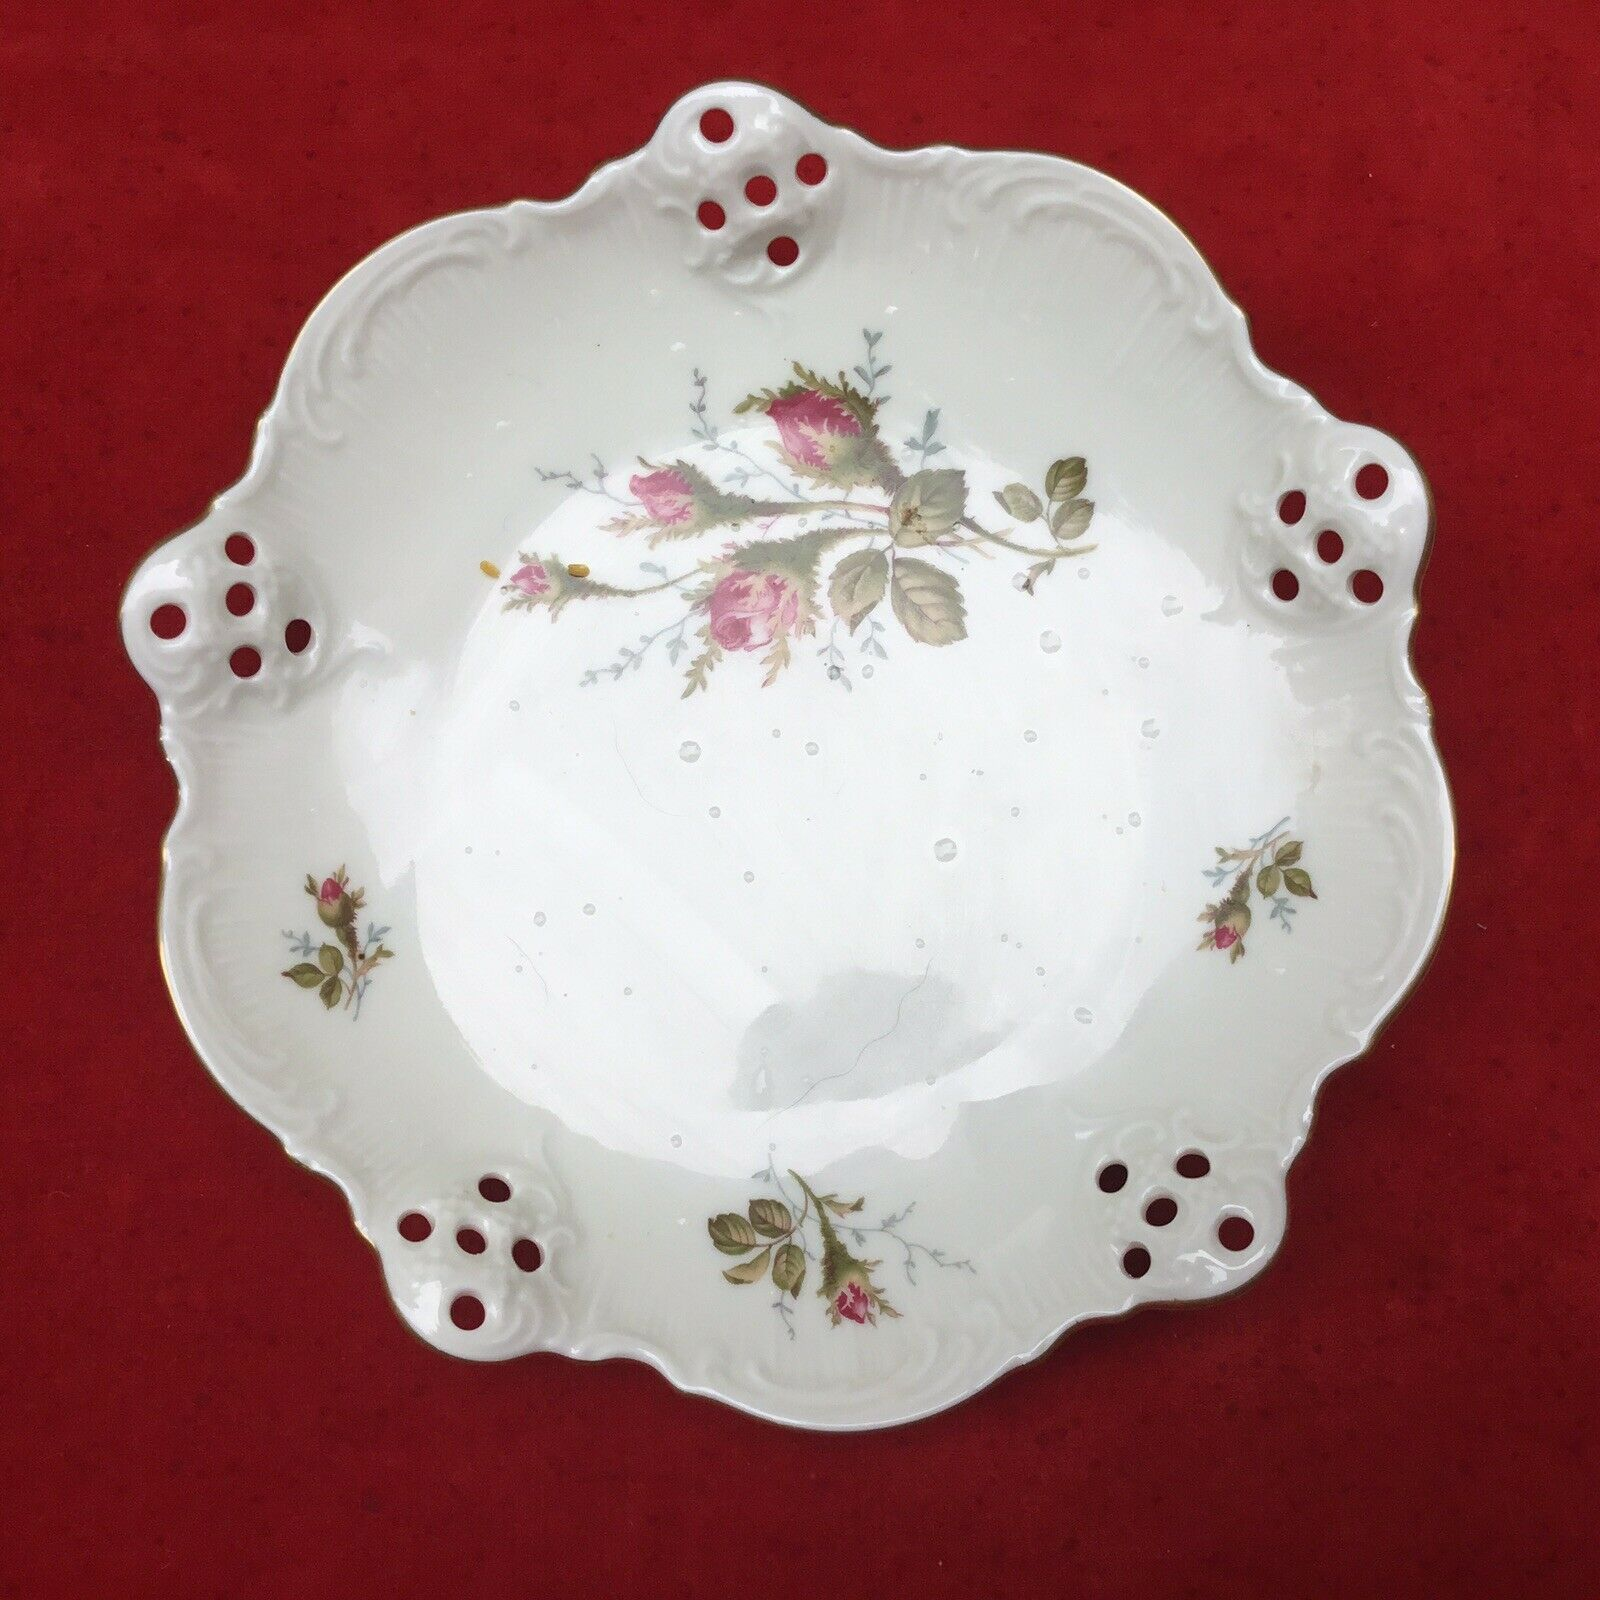 "Primary image for VTG ROSENTHAL CHINA MOOSROSE RETICULATED FOOTED CANDY DISH 7,5"" DIAMETER GERMANY"